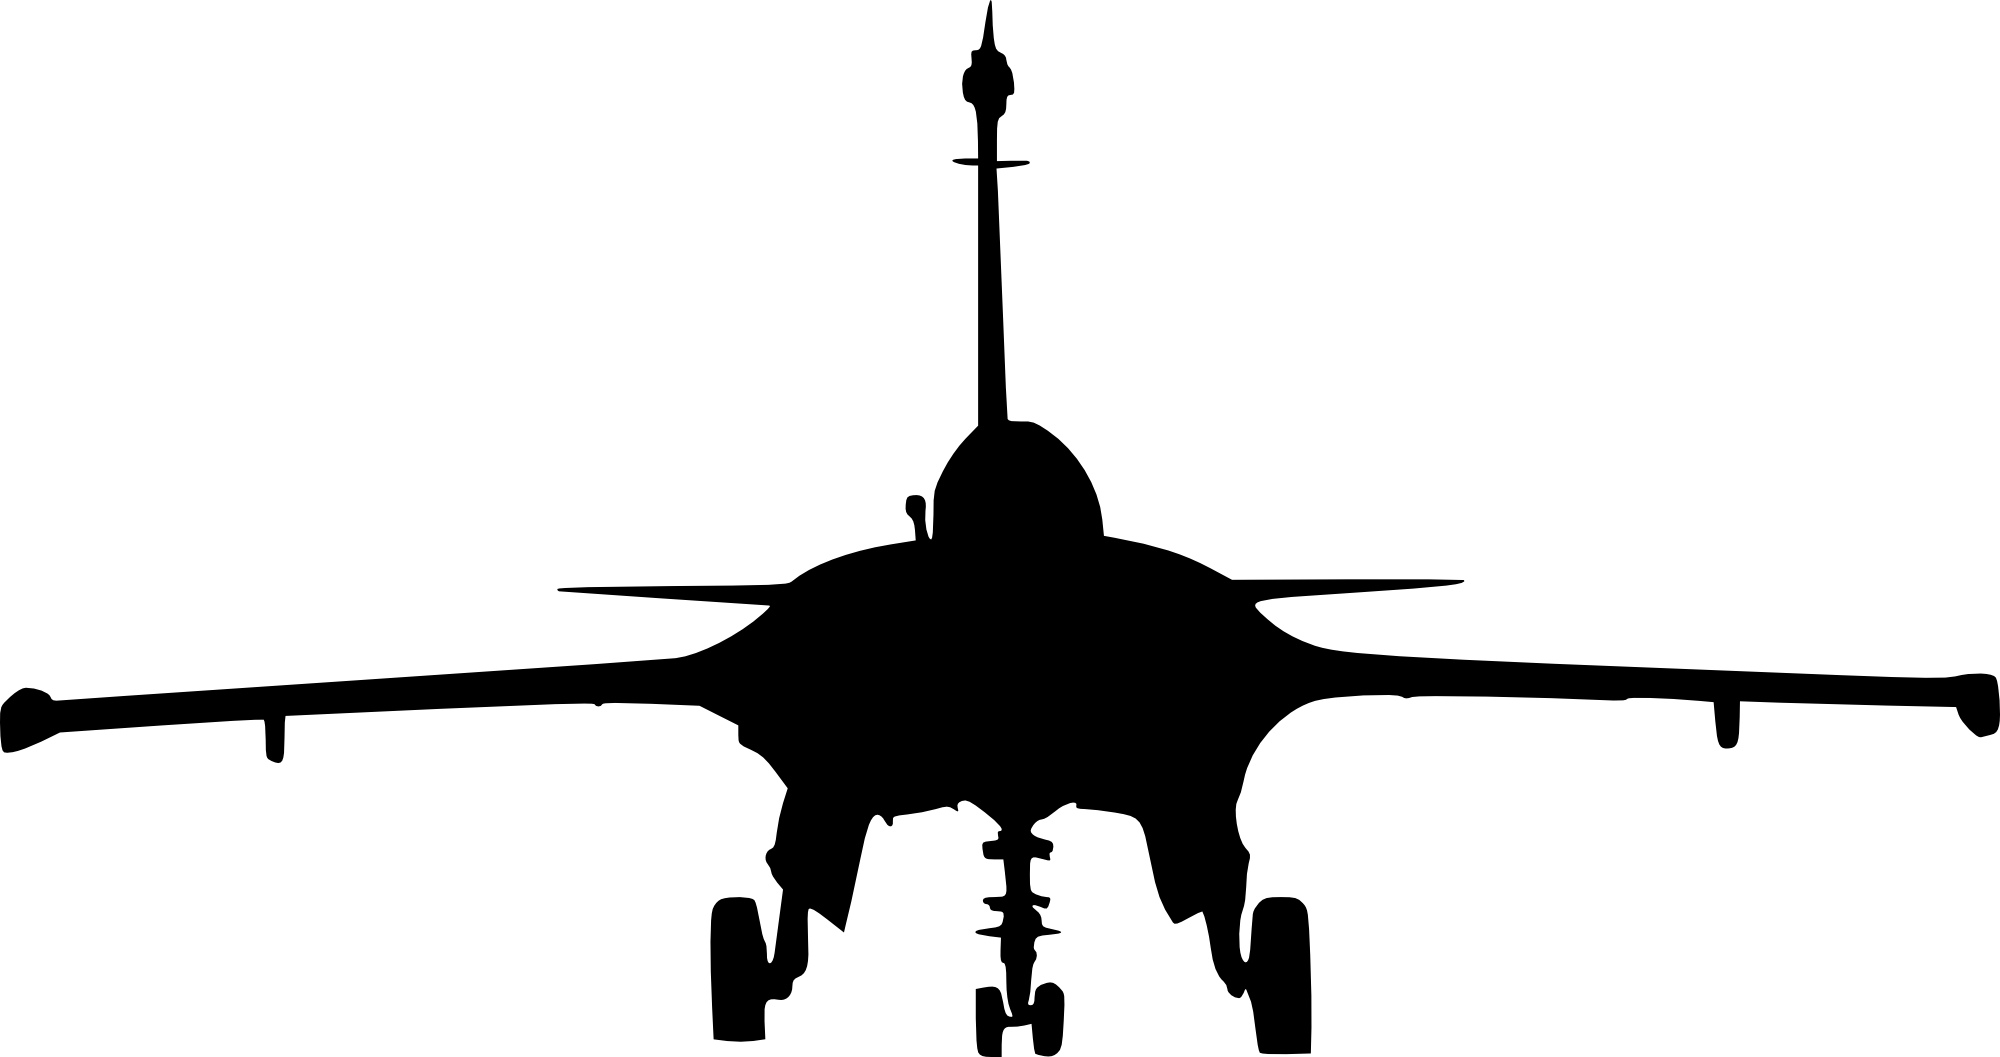 Plane svg fighter. Jet drawing at getdrawings